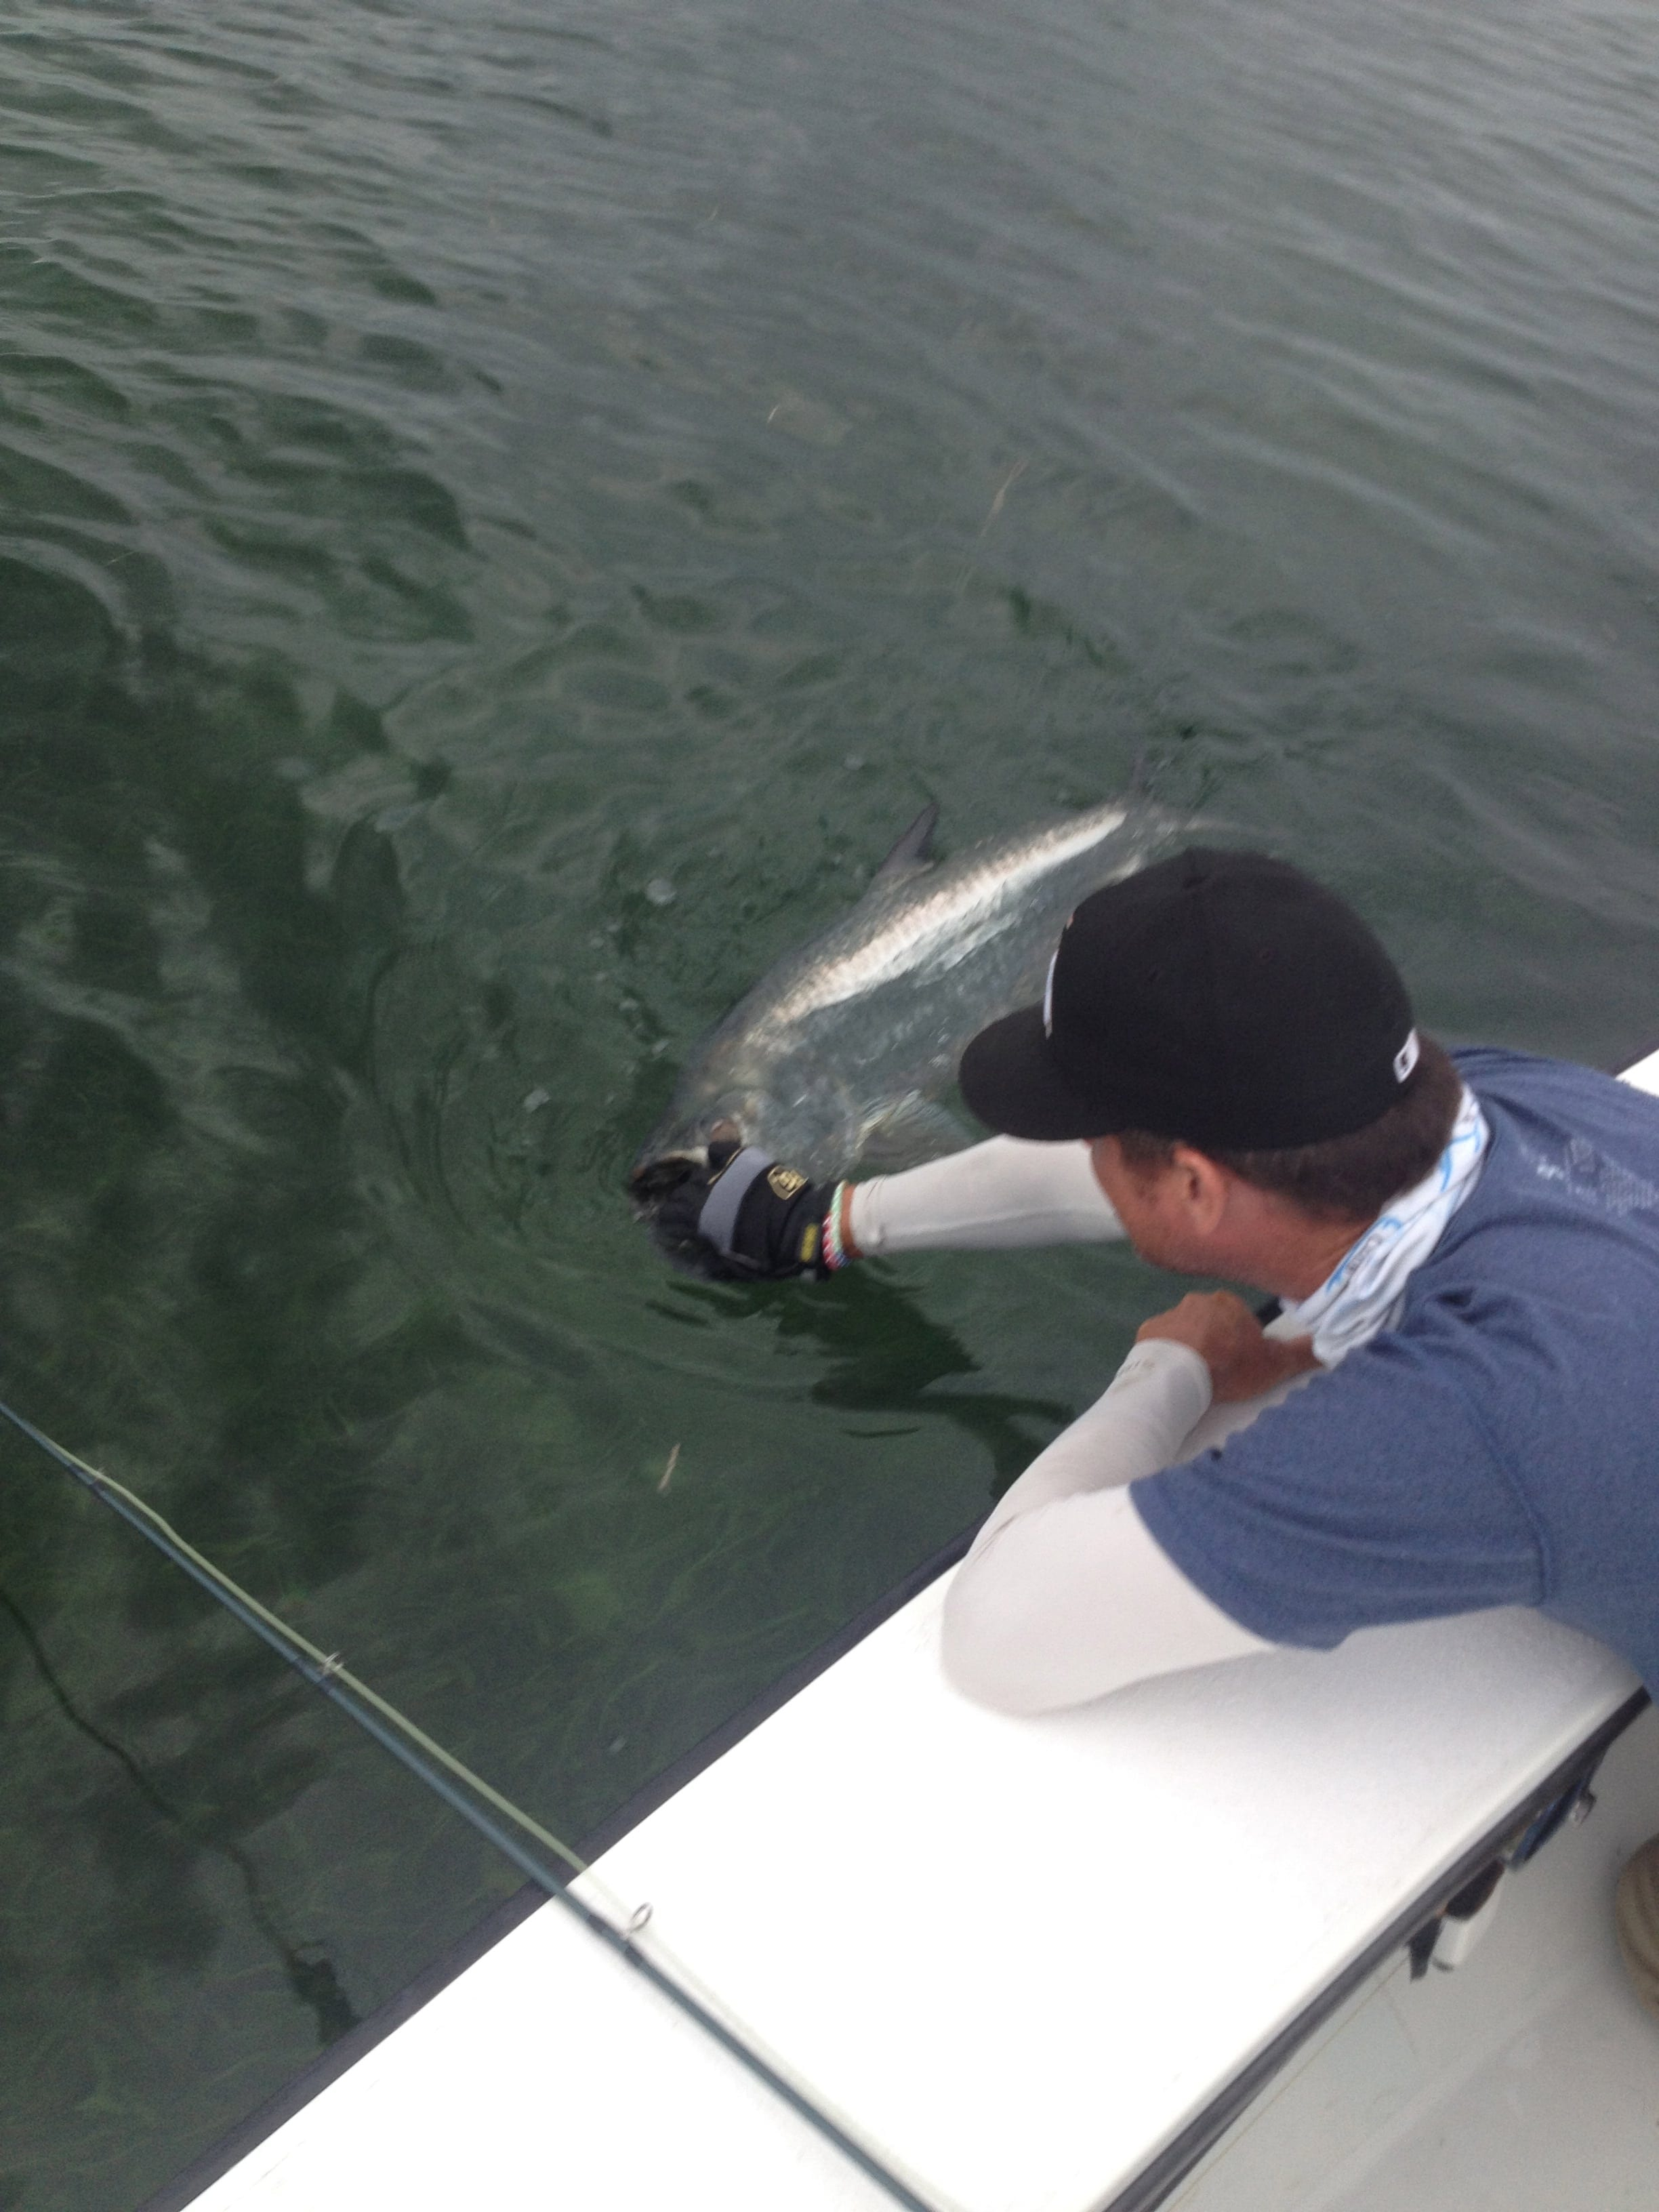 John O'Hearn gets the release proper from a small tarpon in August. Photo Nathaniel Linville, guiding John O'Hearn.